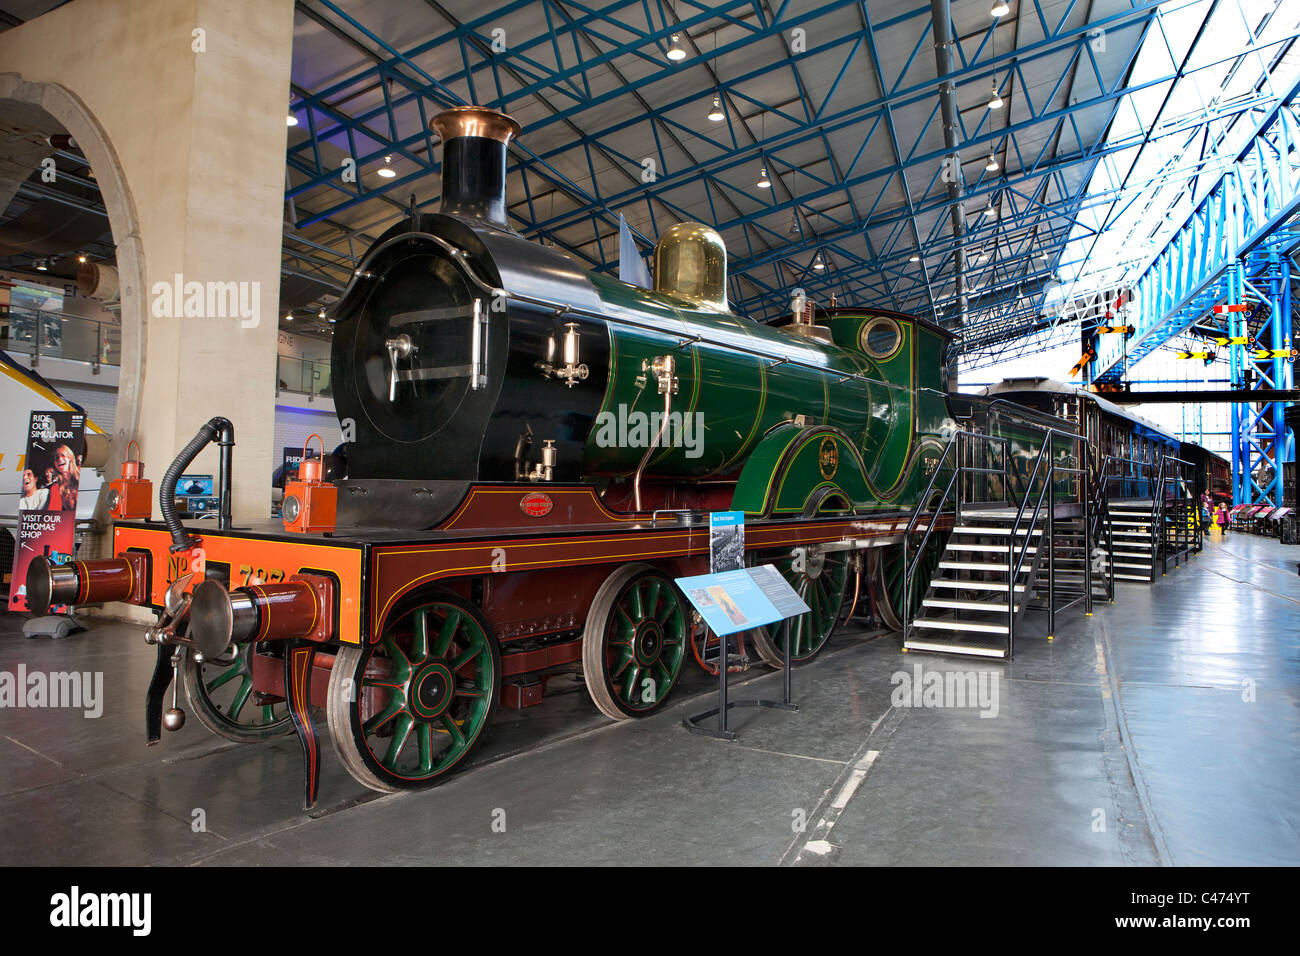 The South Eastern & Chatham Railway Class D 4-4-0 steam locomotive No 737, 1901 at the National Railway Museum - Stock Image